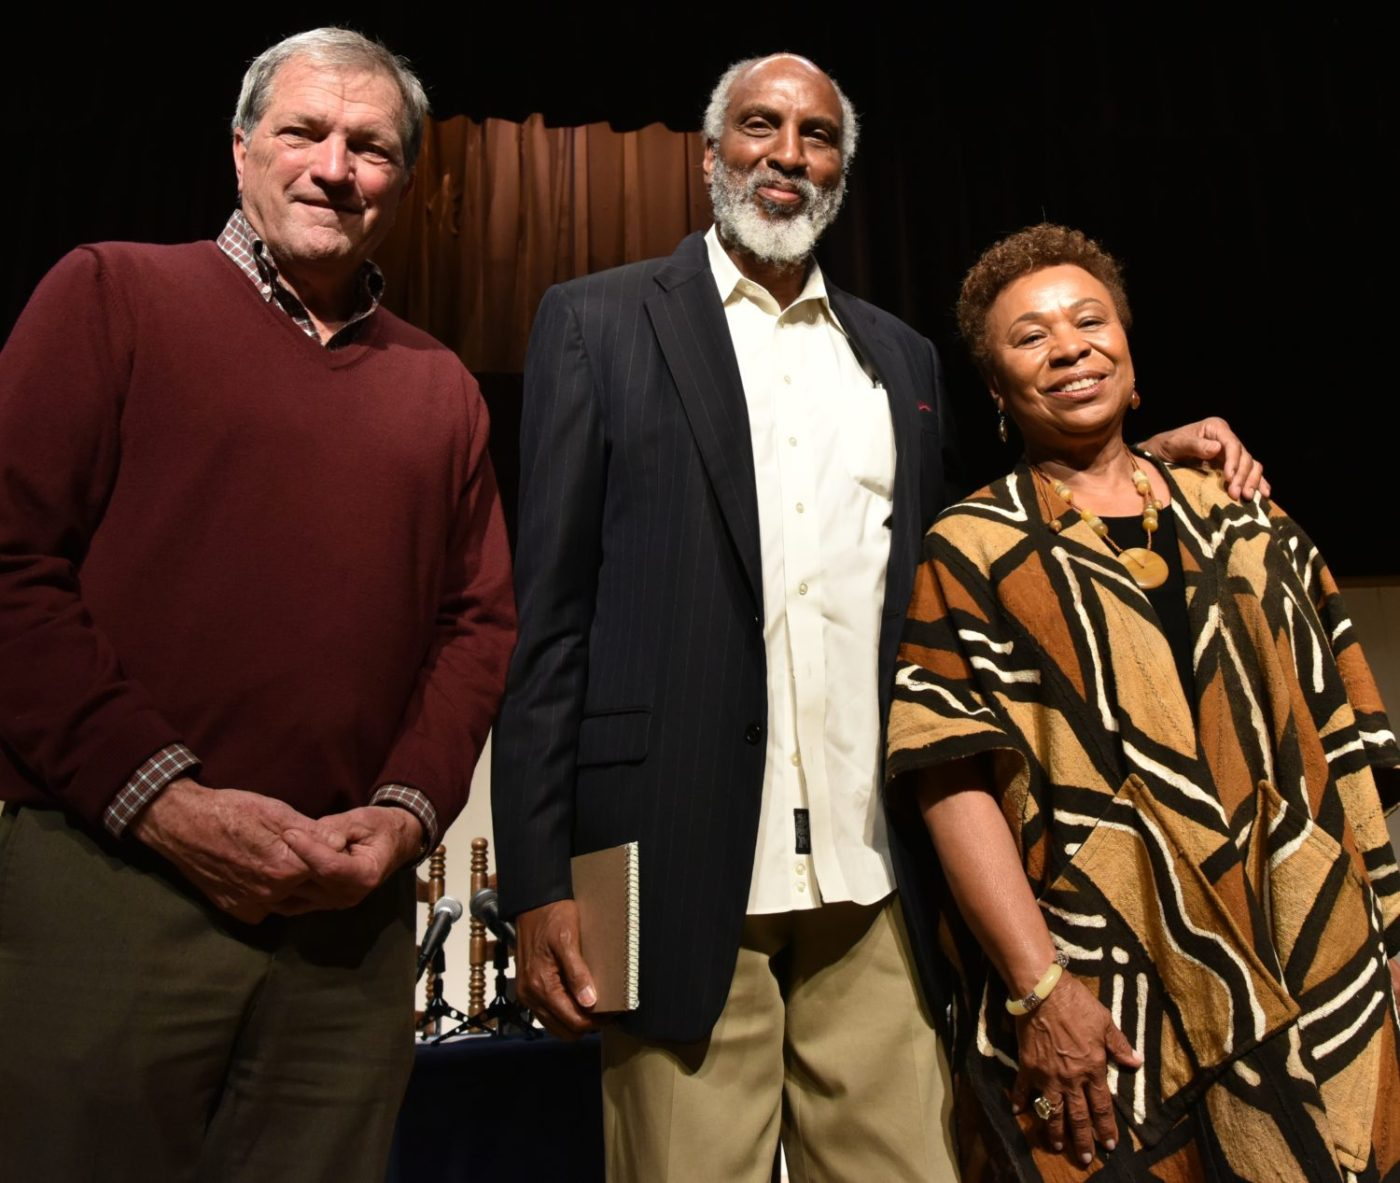 Congresswoman-Barbara-Lee-john-a.-powell-and-Congressman-Mark-DeSaulnier-at-a-town-hall-on-Port-Chicago-by-Johnnie-Burrell-1400x1183, 77th anniversary commemoration of the Port Chicago Explosion, Local News & Views